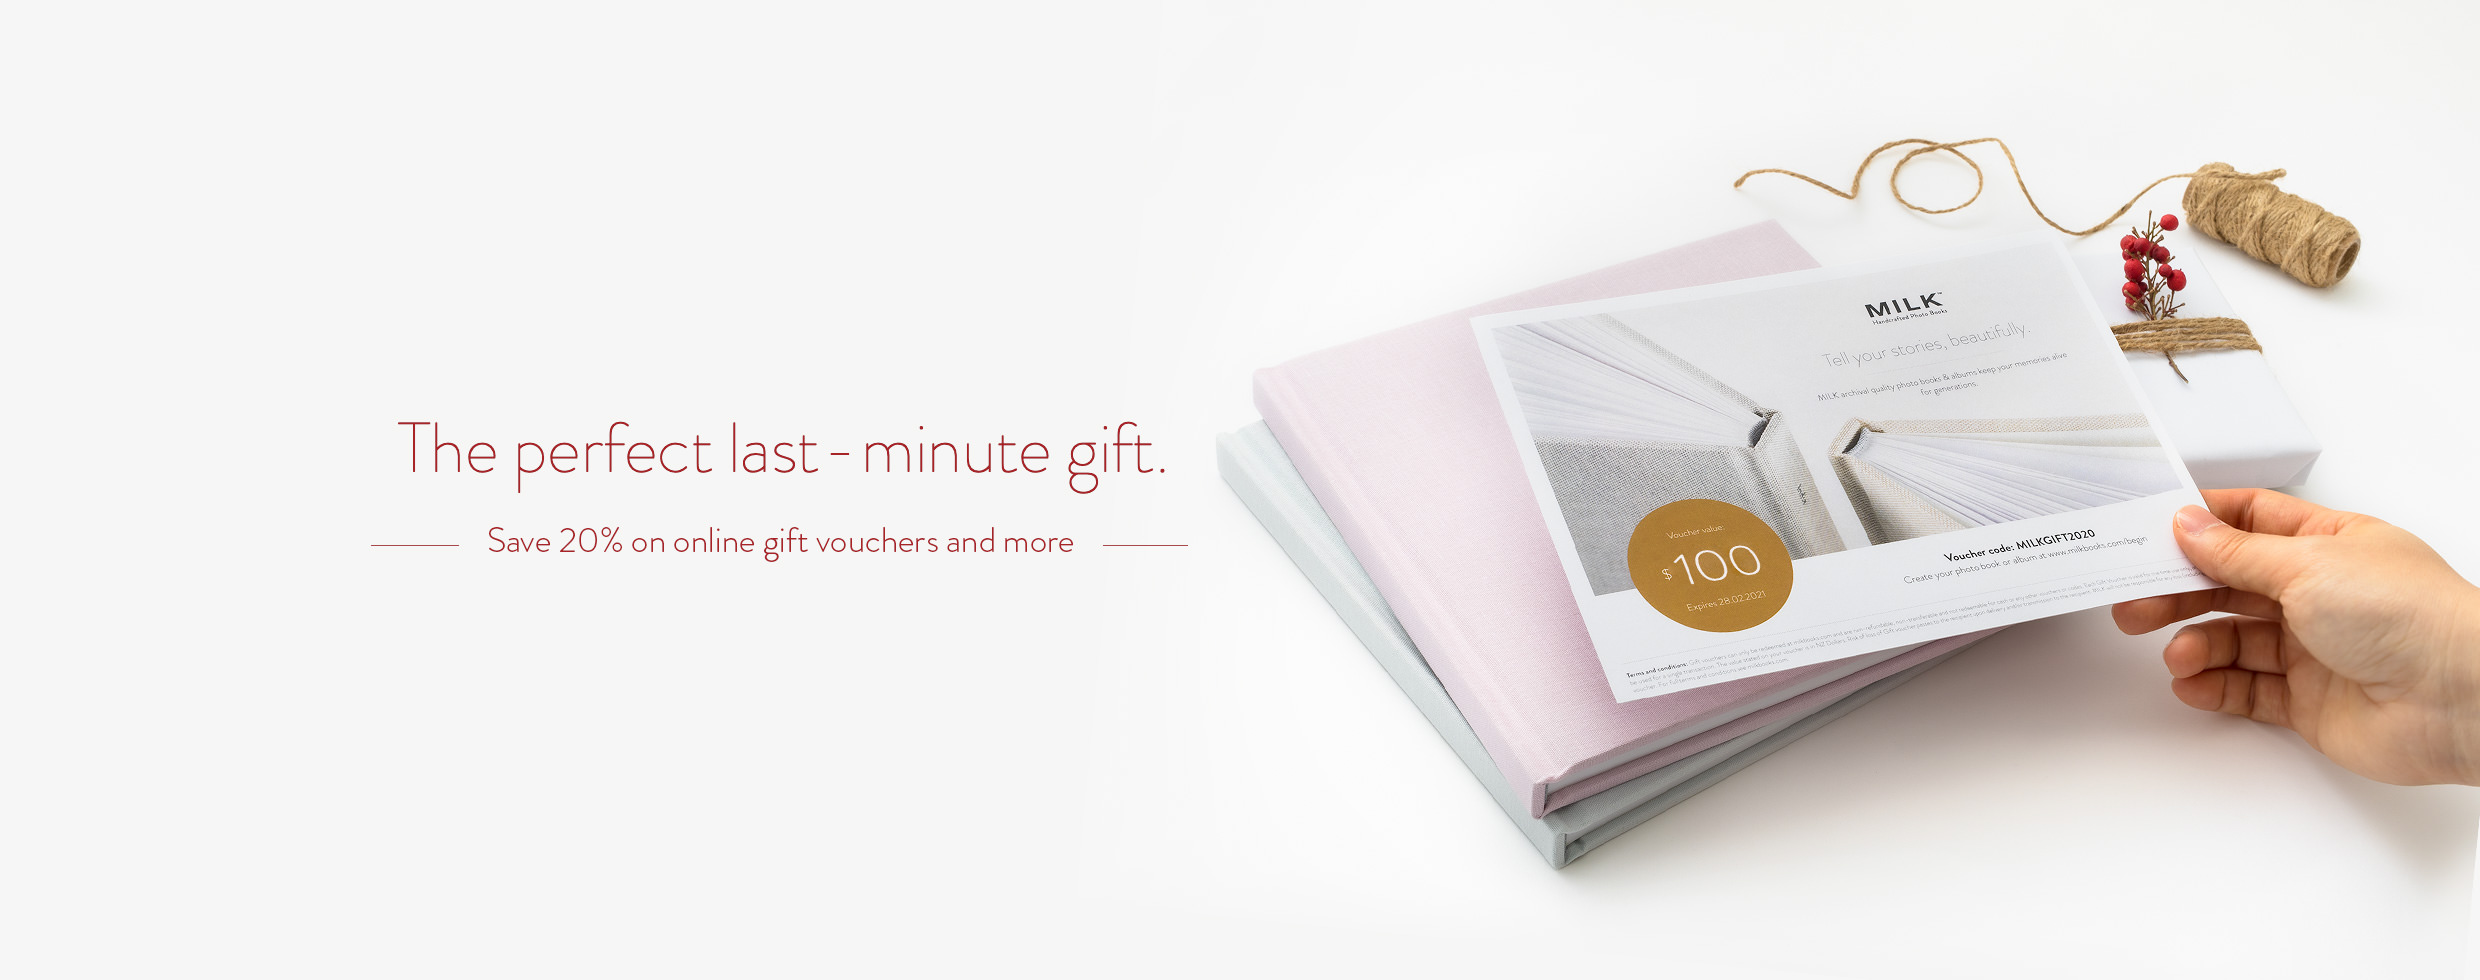 The perfect last minute gift. Save 20% on online gift vouchers and more.